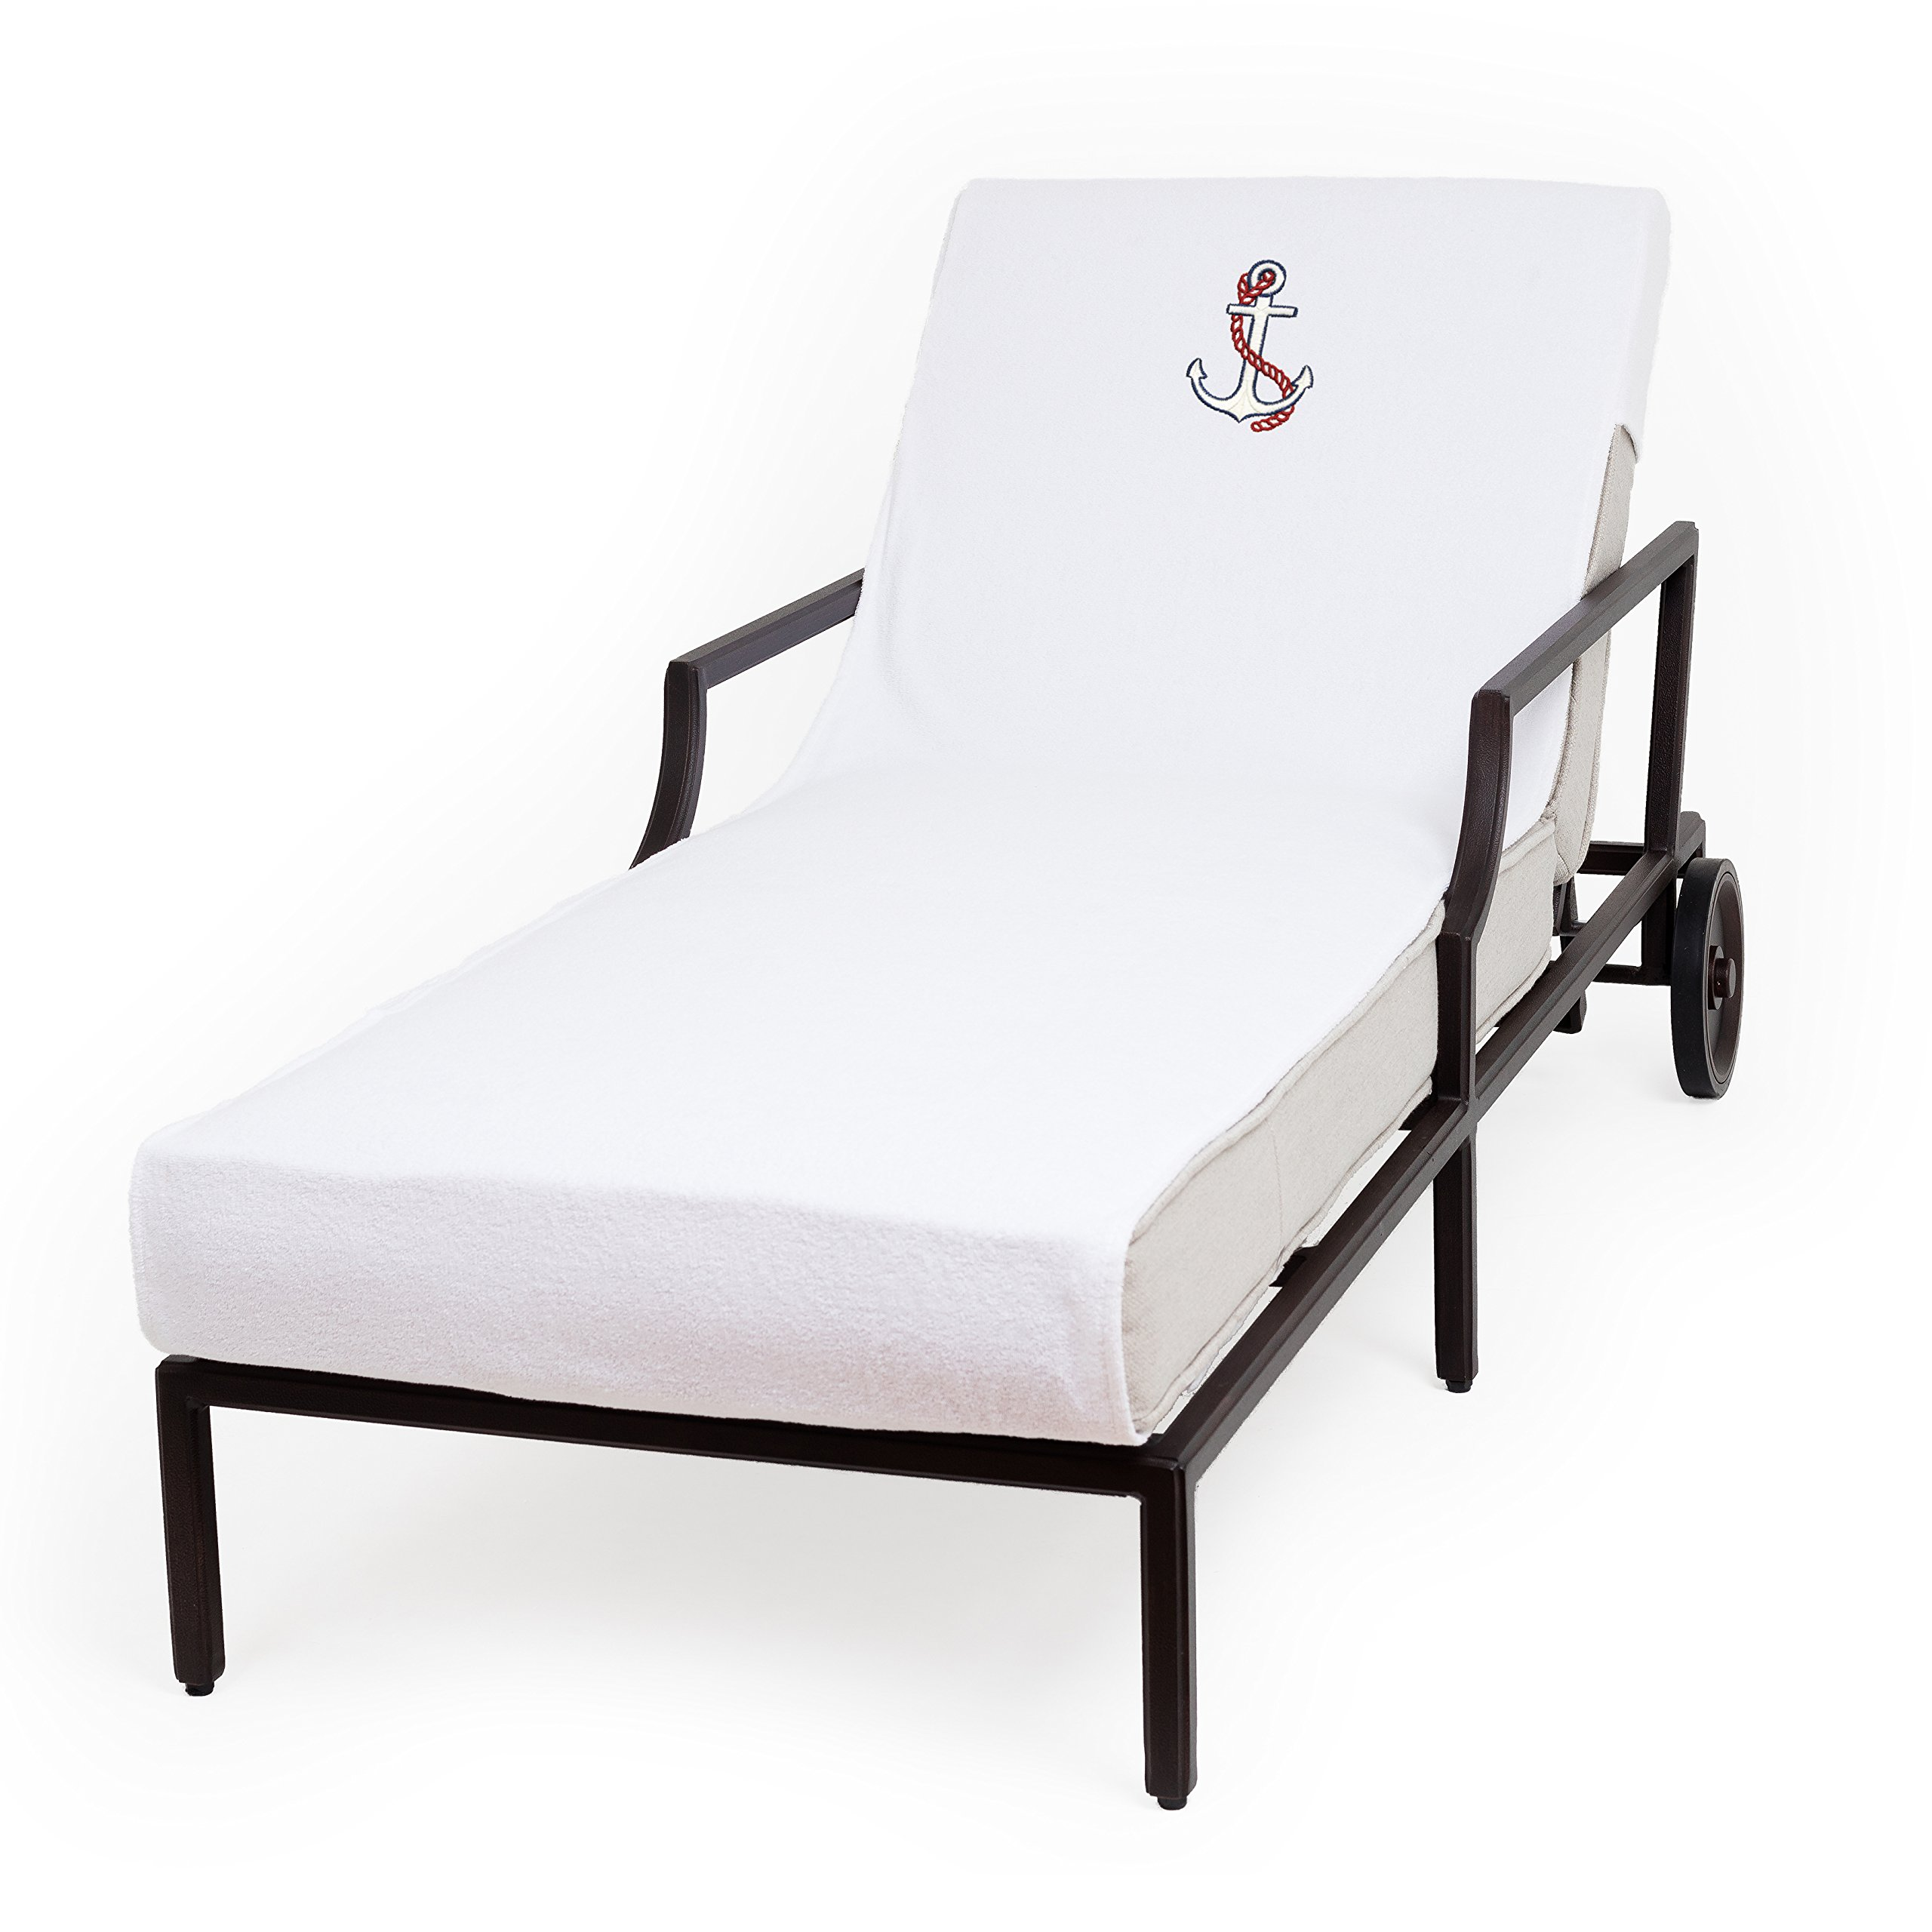 Linum Home Textiles CL00-SNP-ANC Anchor N/P Chaise Lounge Cover, White